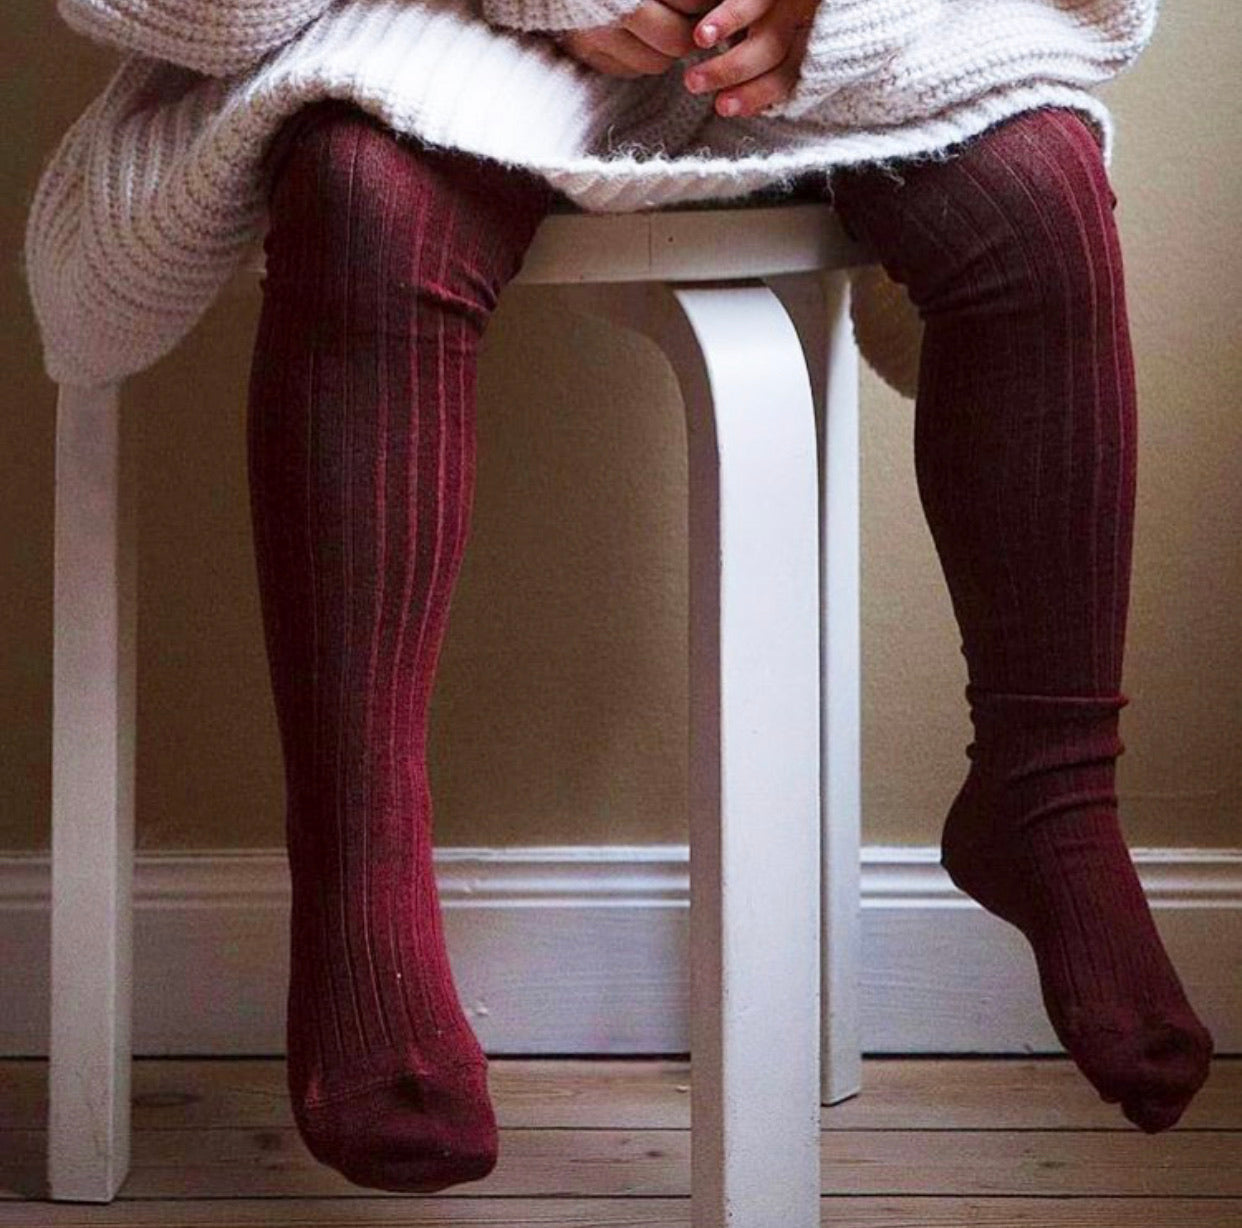 Ribbed stockings.  Cranberry